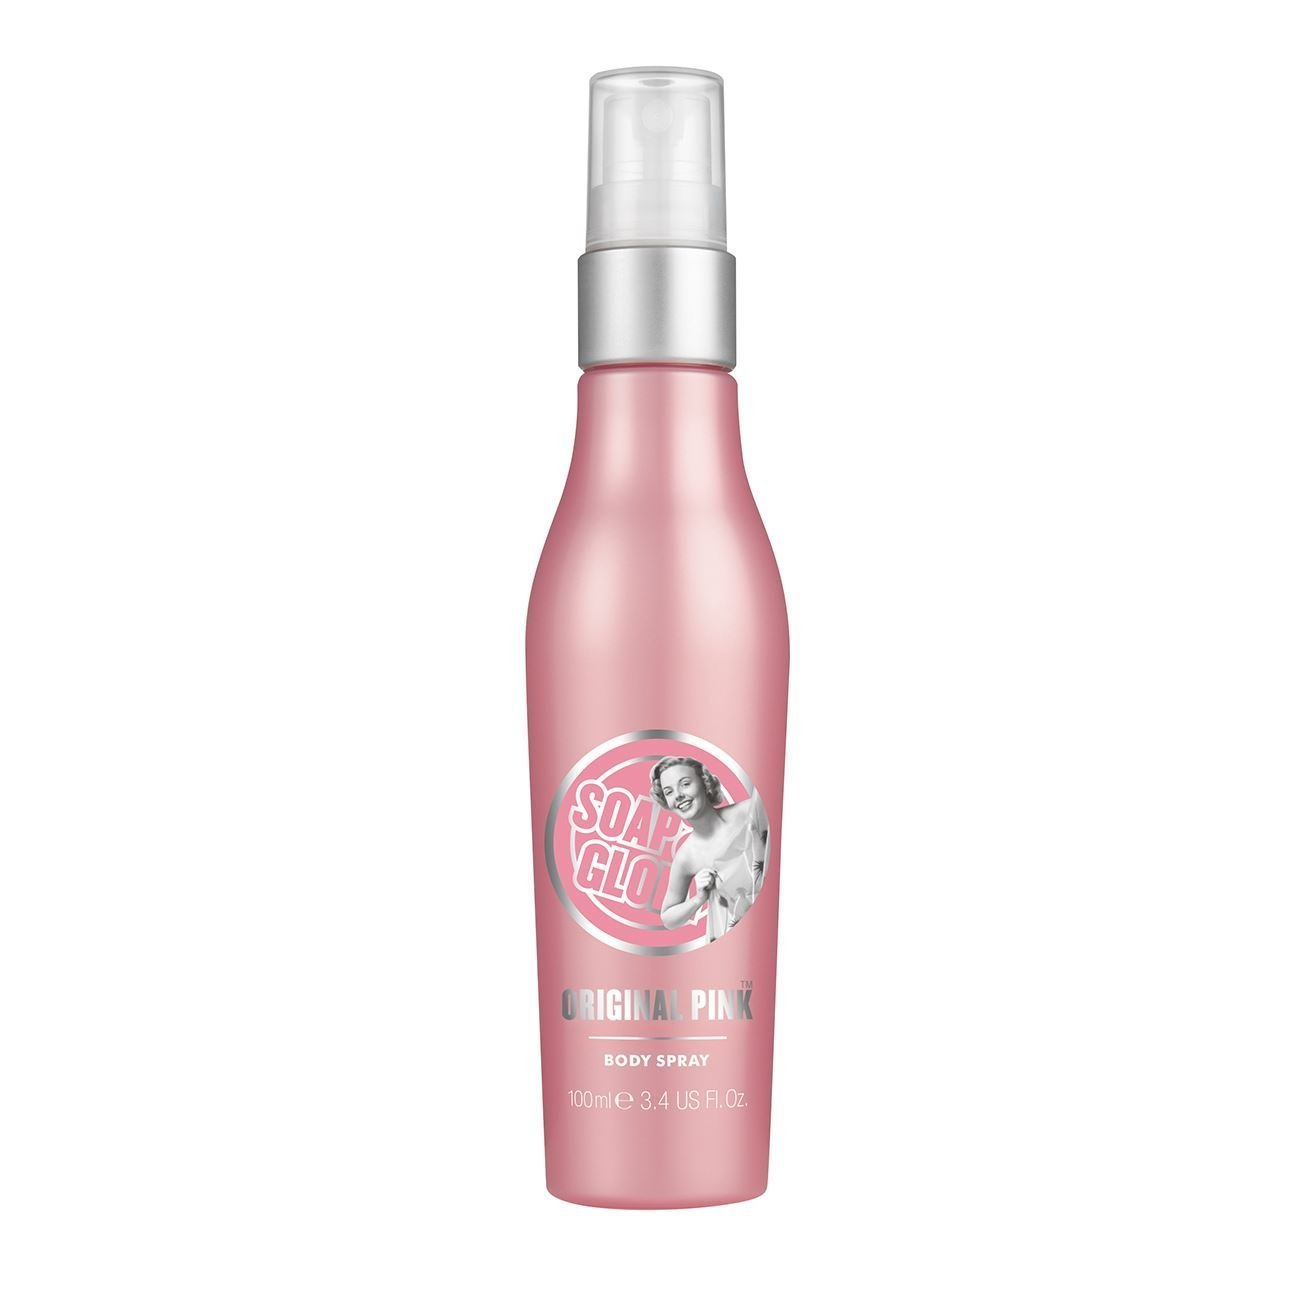 Soap And Glory Original Pink Fragrant Body Spray 100ml B00X7GG6RK